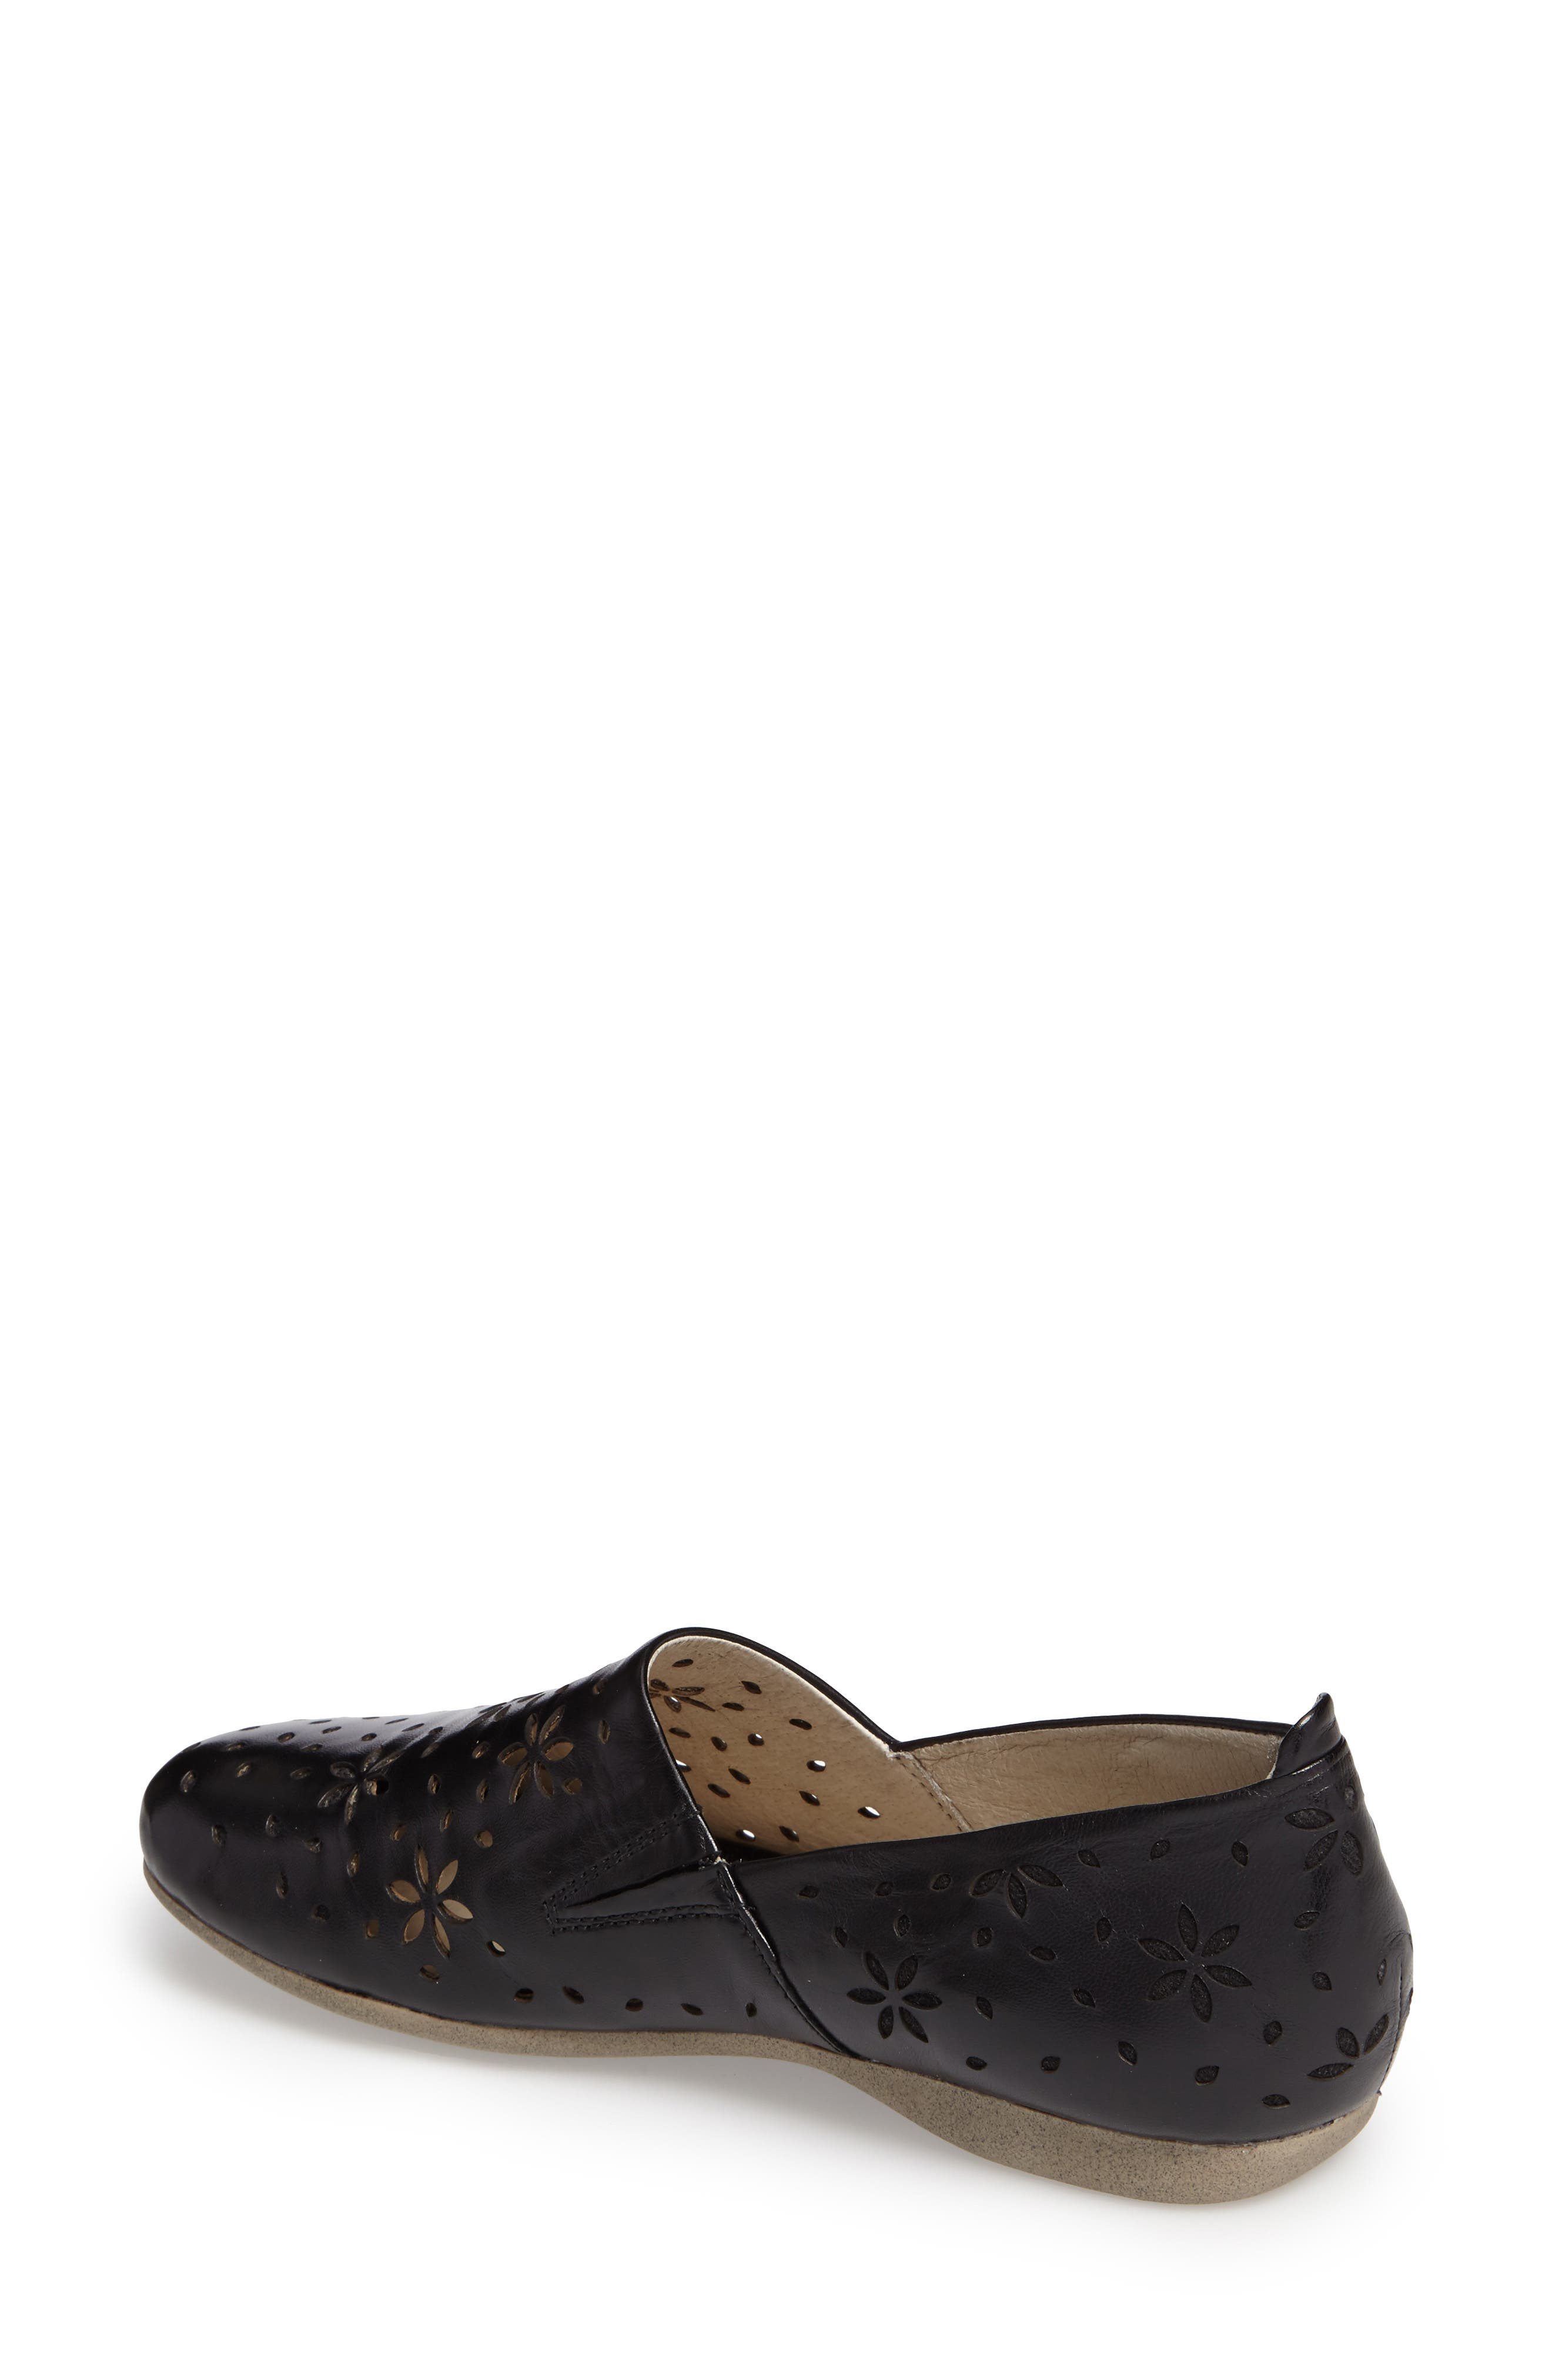 Fiona 31 Perforated Flat,                             Alternate thumbnail 4, color,